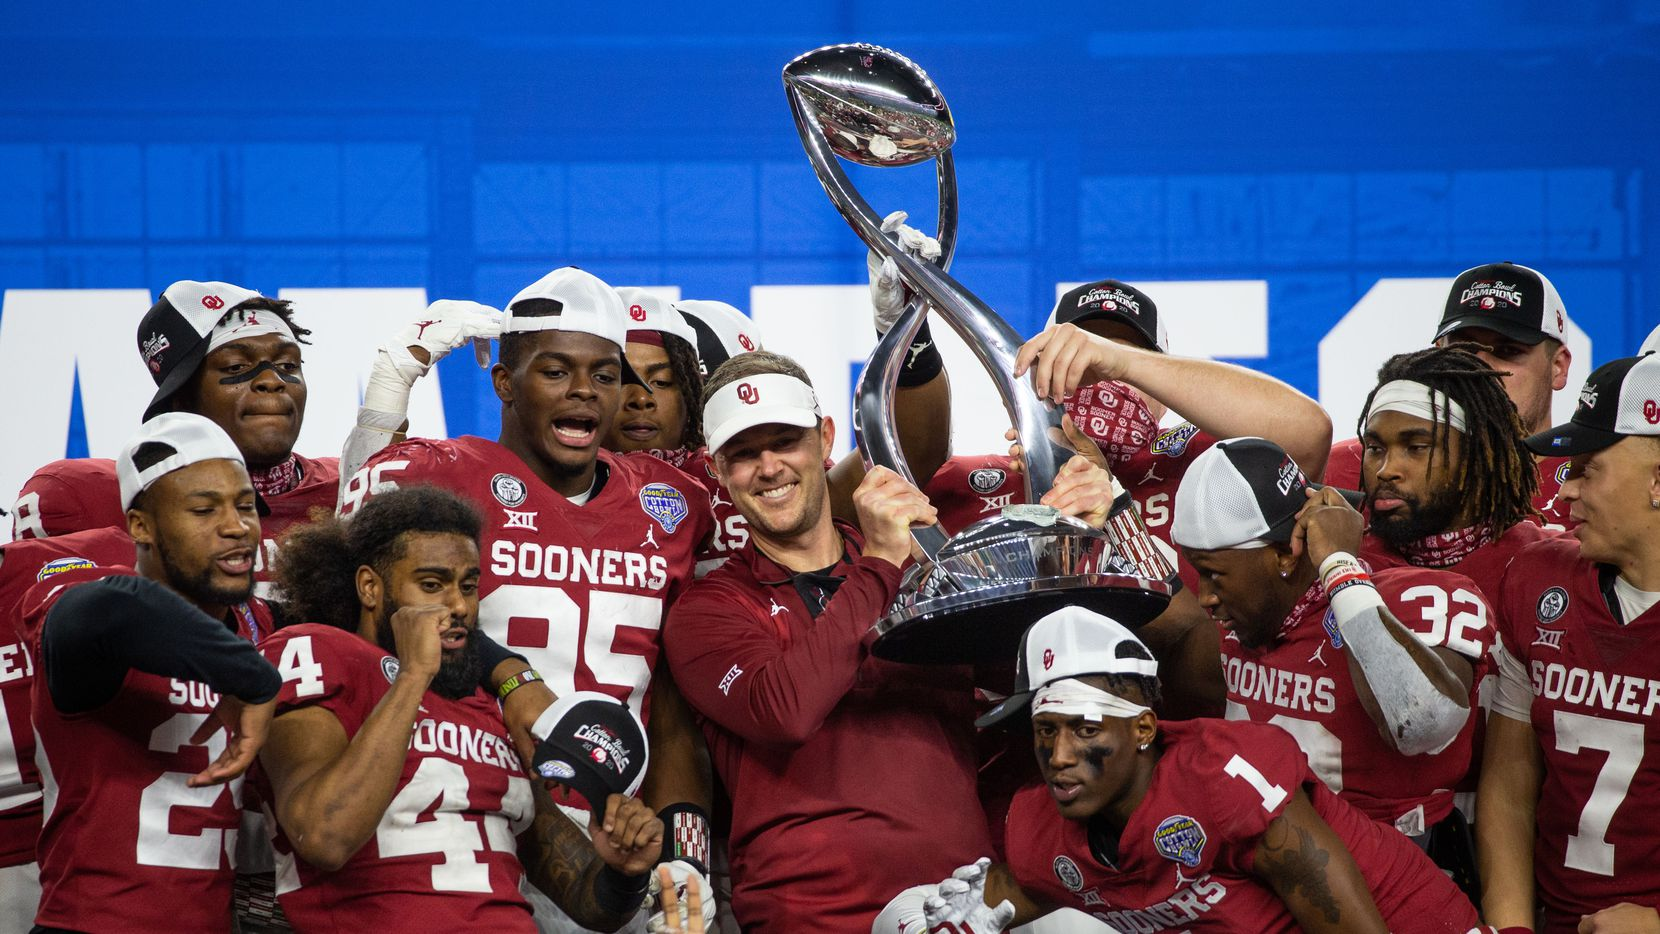 Oklahoma Sooners head coach Lincoln Riley holds up the Cotton Bowl champions' trophy and celebrates with his team during the post-game ceremony following the Goodyear Cotton Bowl Classic football game on Thursday, Dec. 30, 2020.